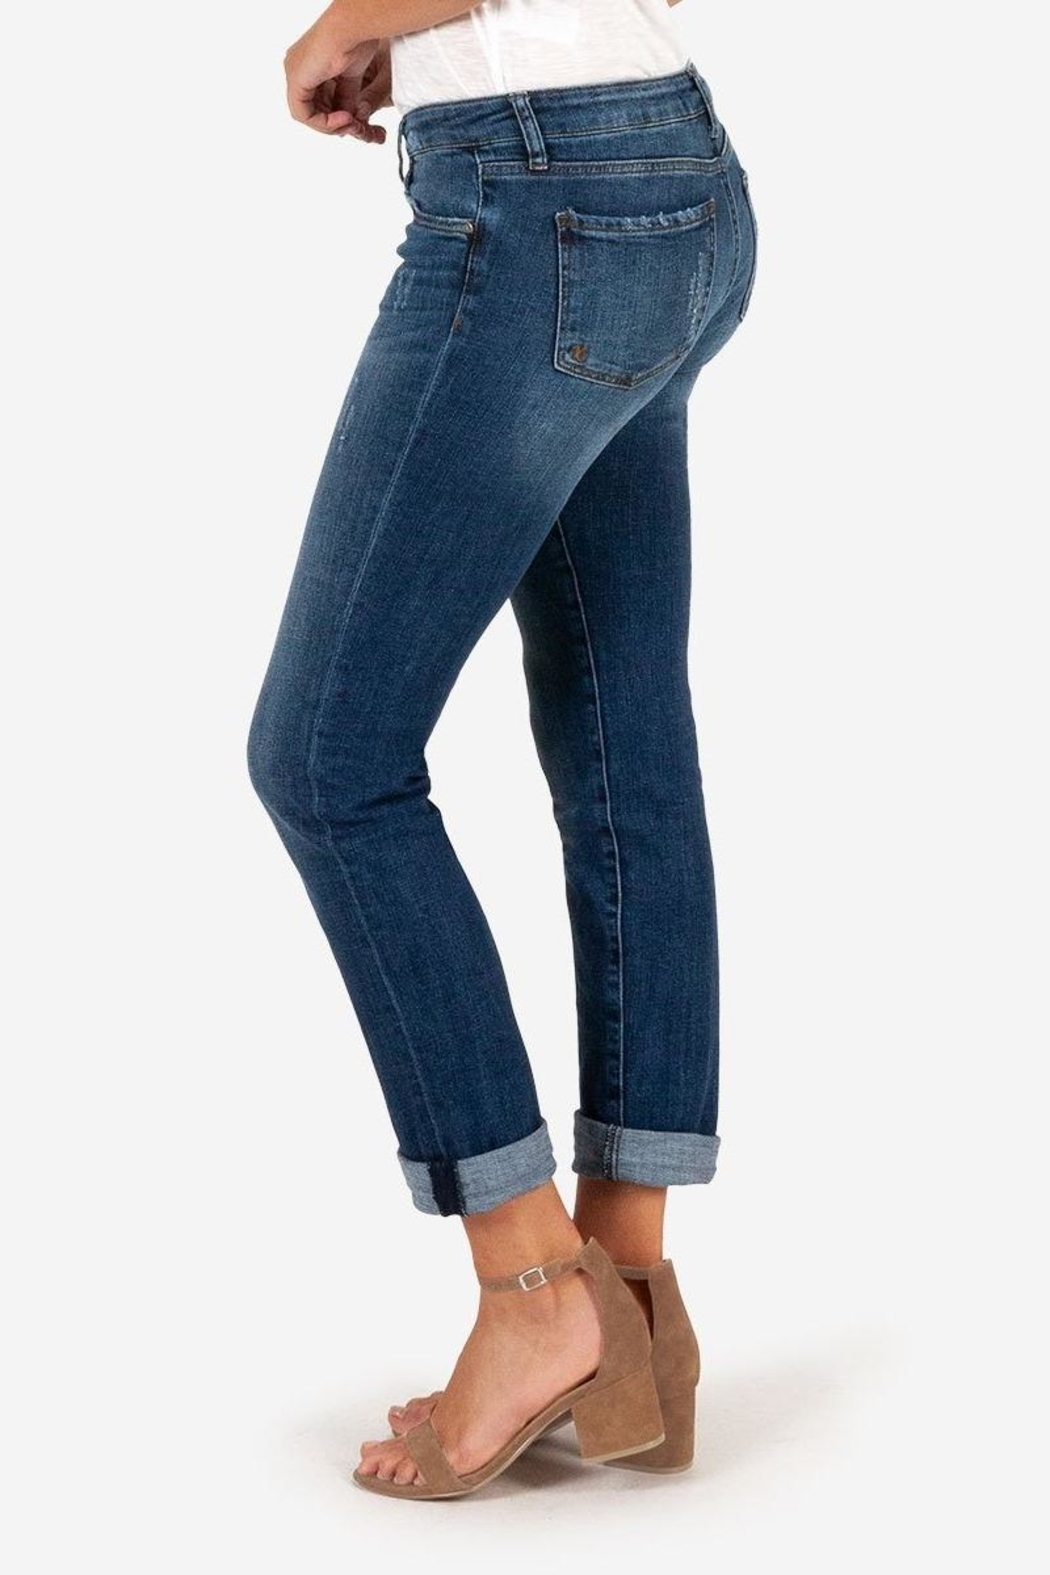 Kut from the Cloth Catherine Boyfriend Jeans - Front Full Image